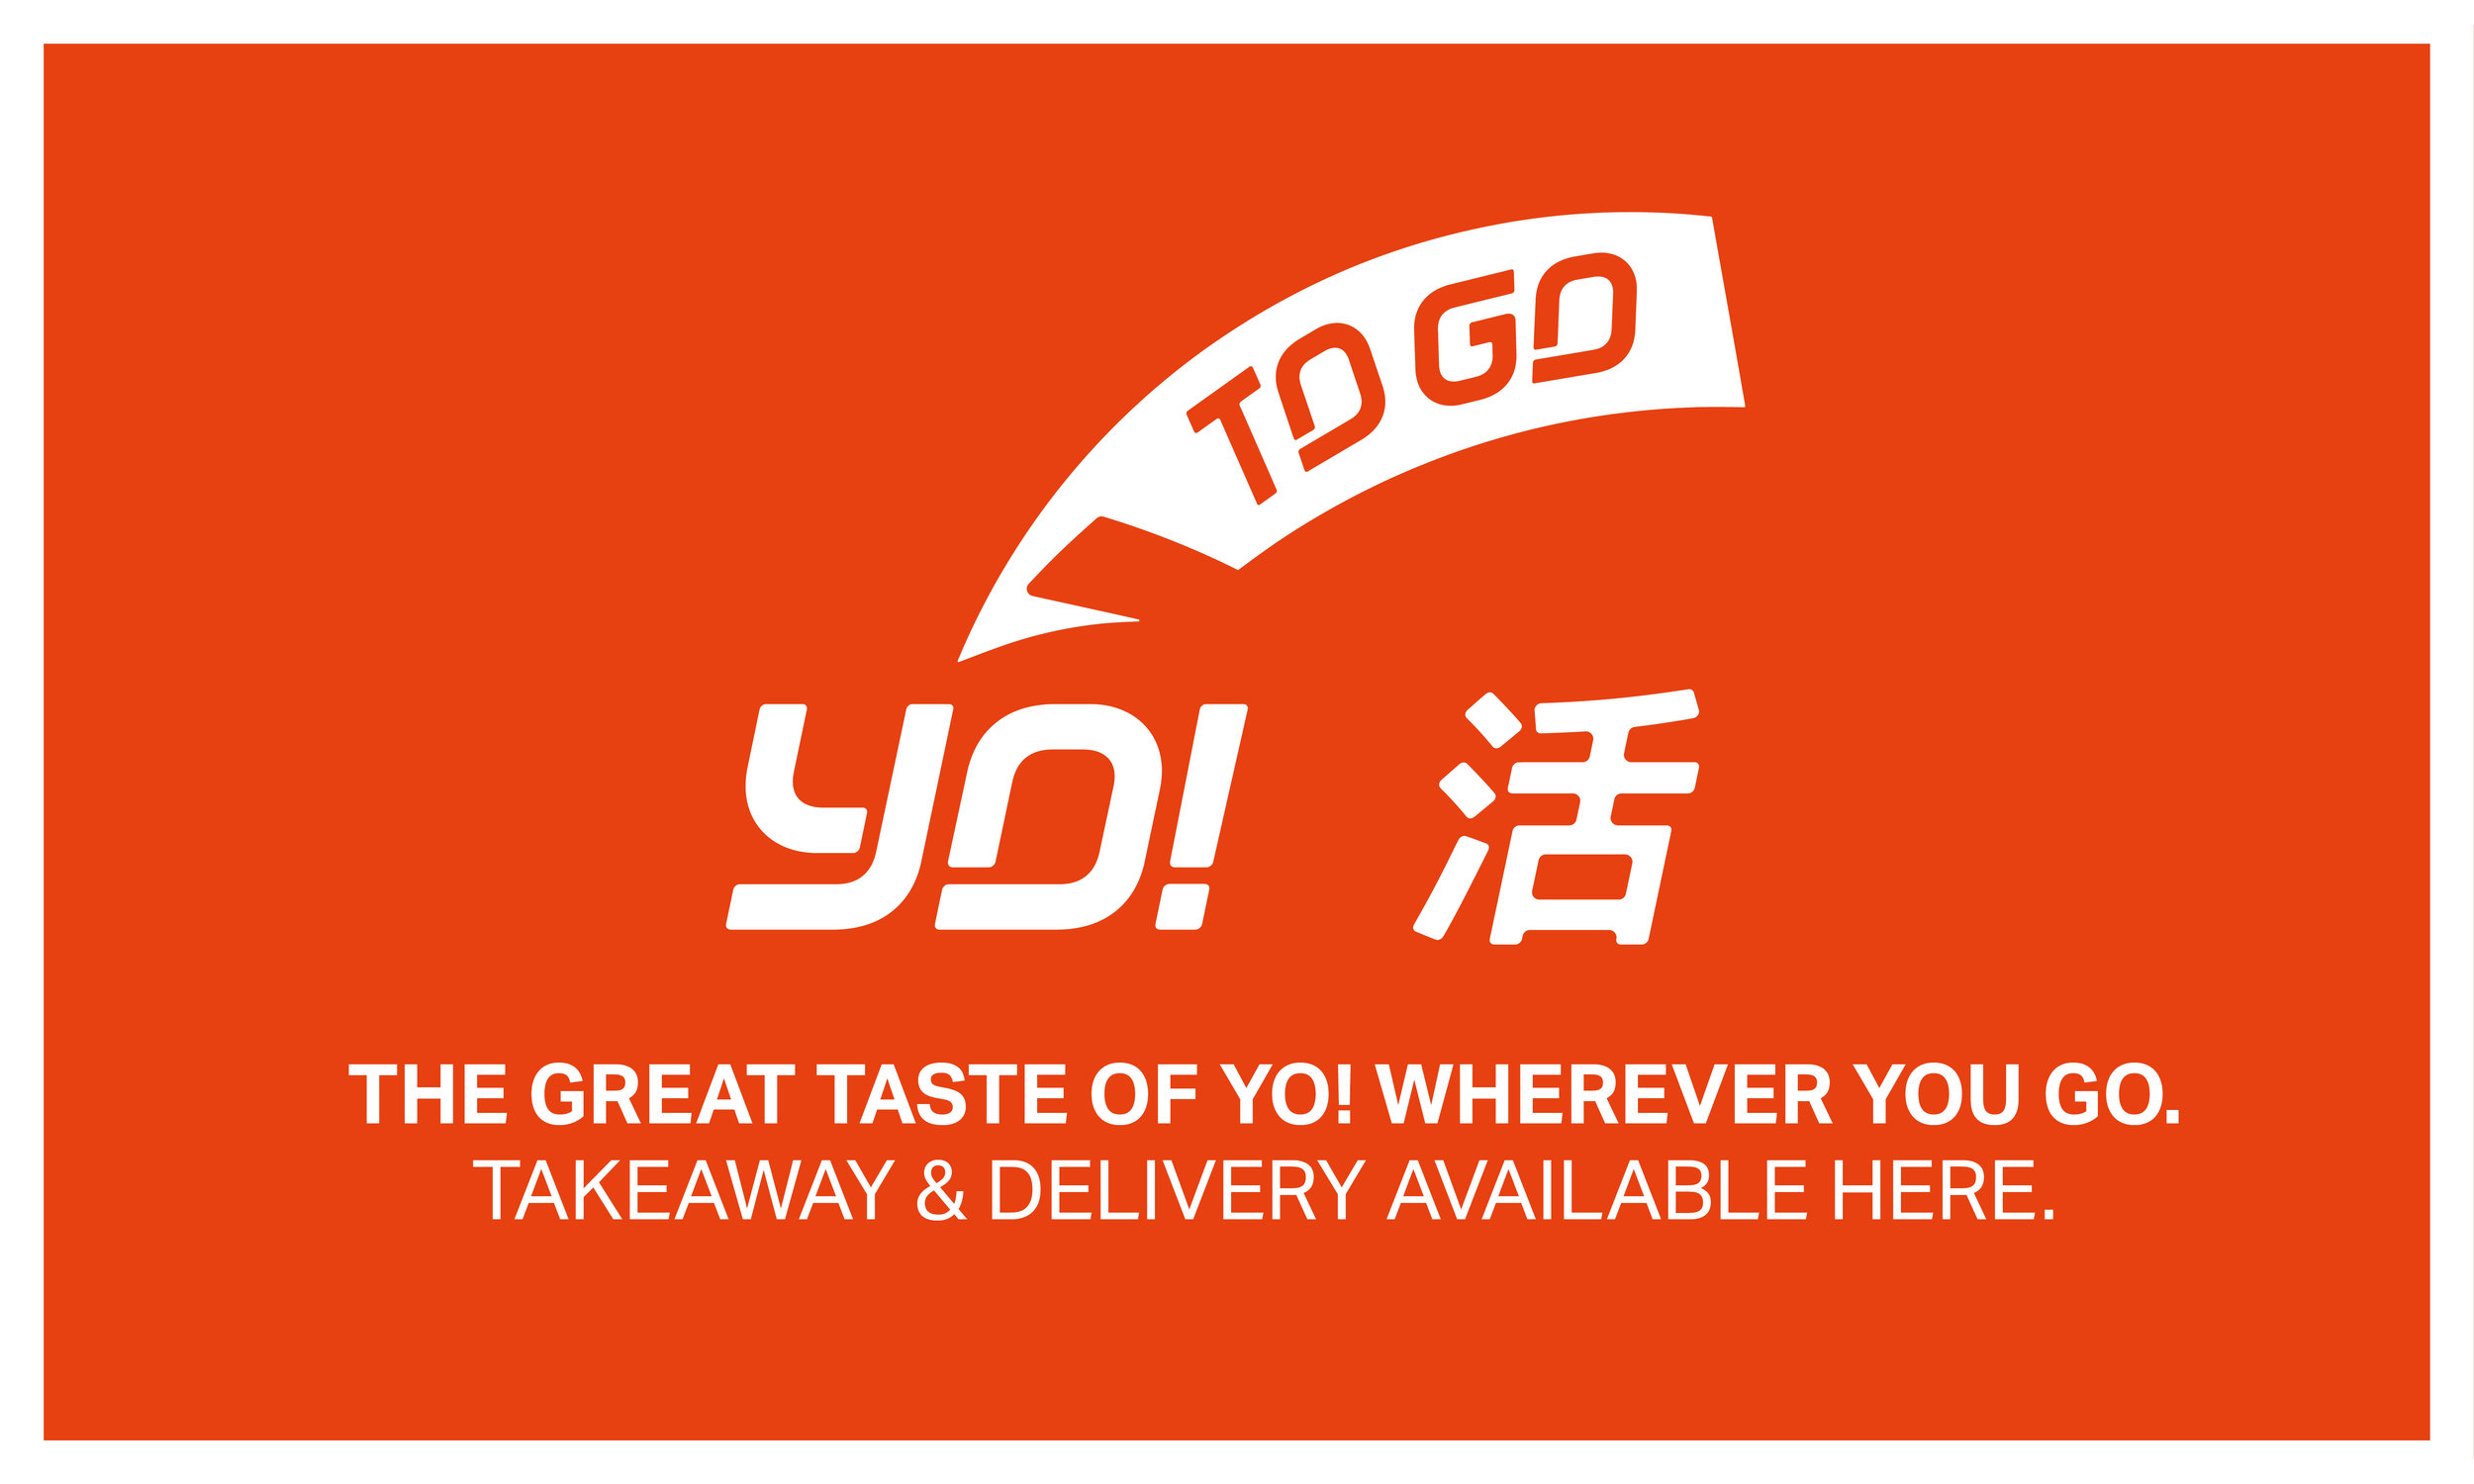 New YO! takeaway logo and branding